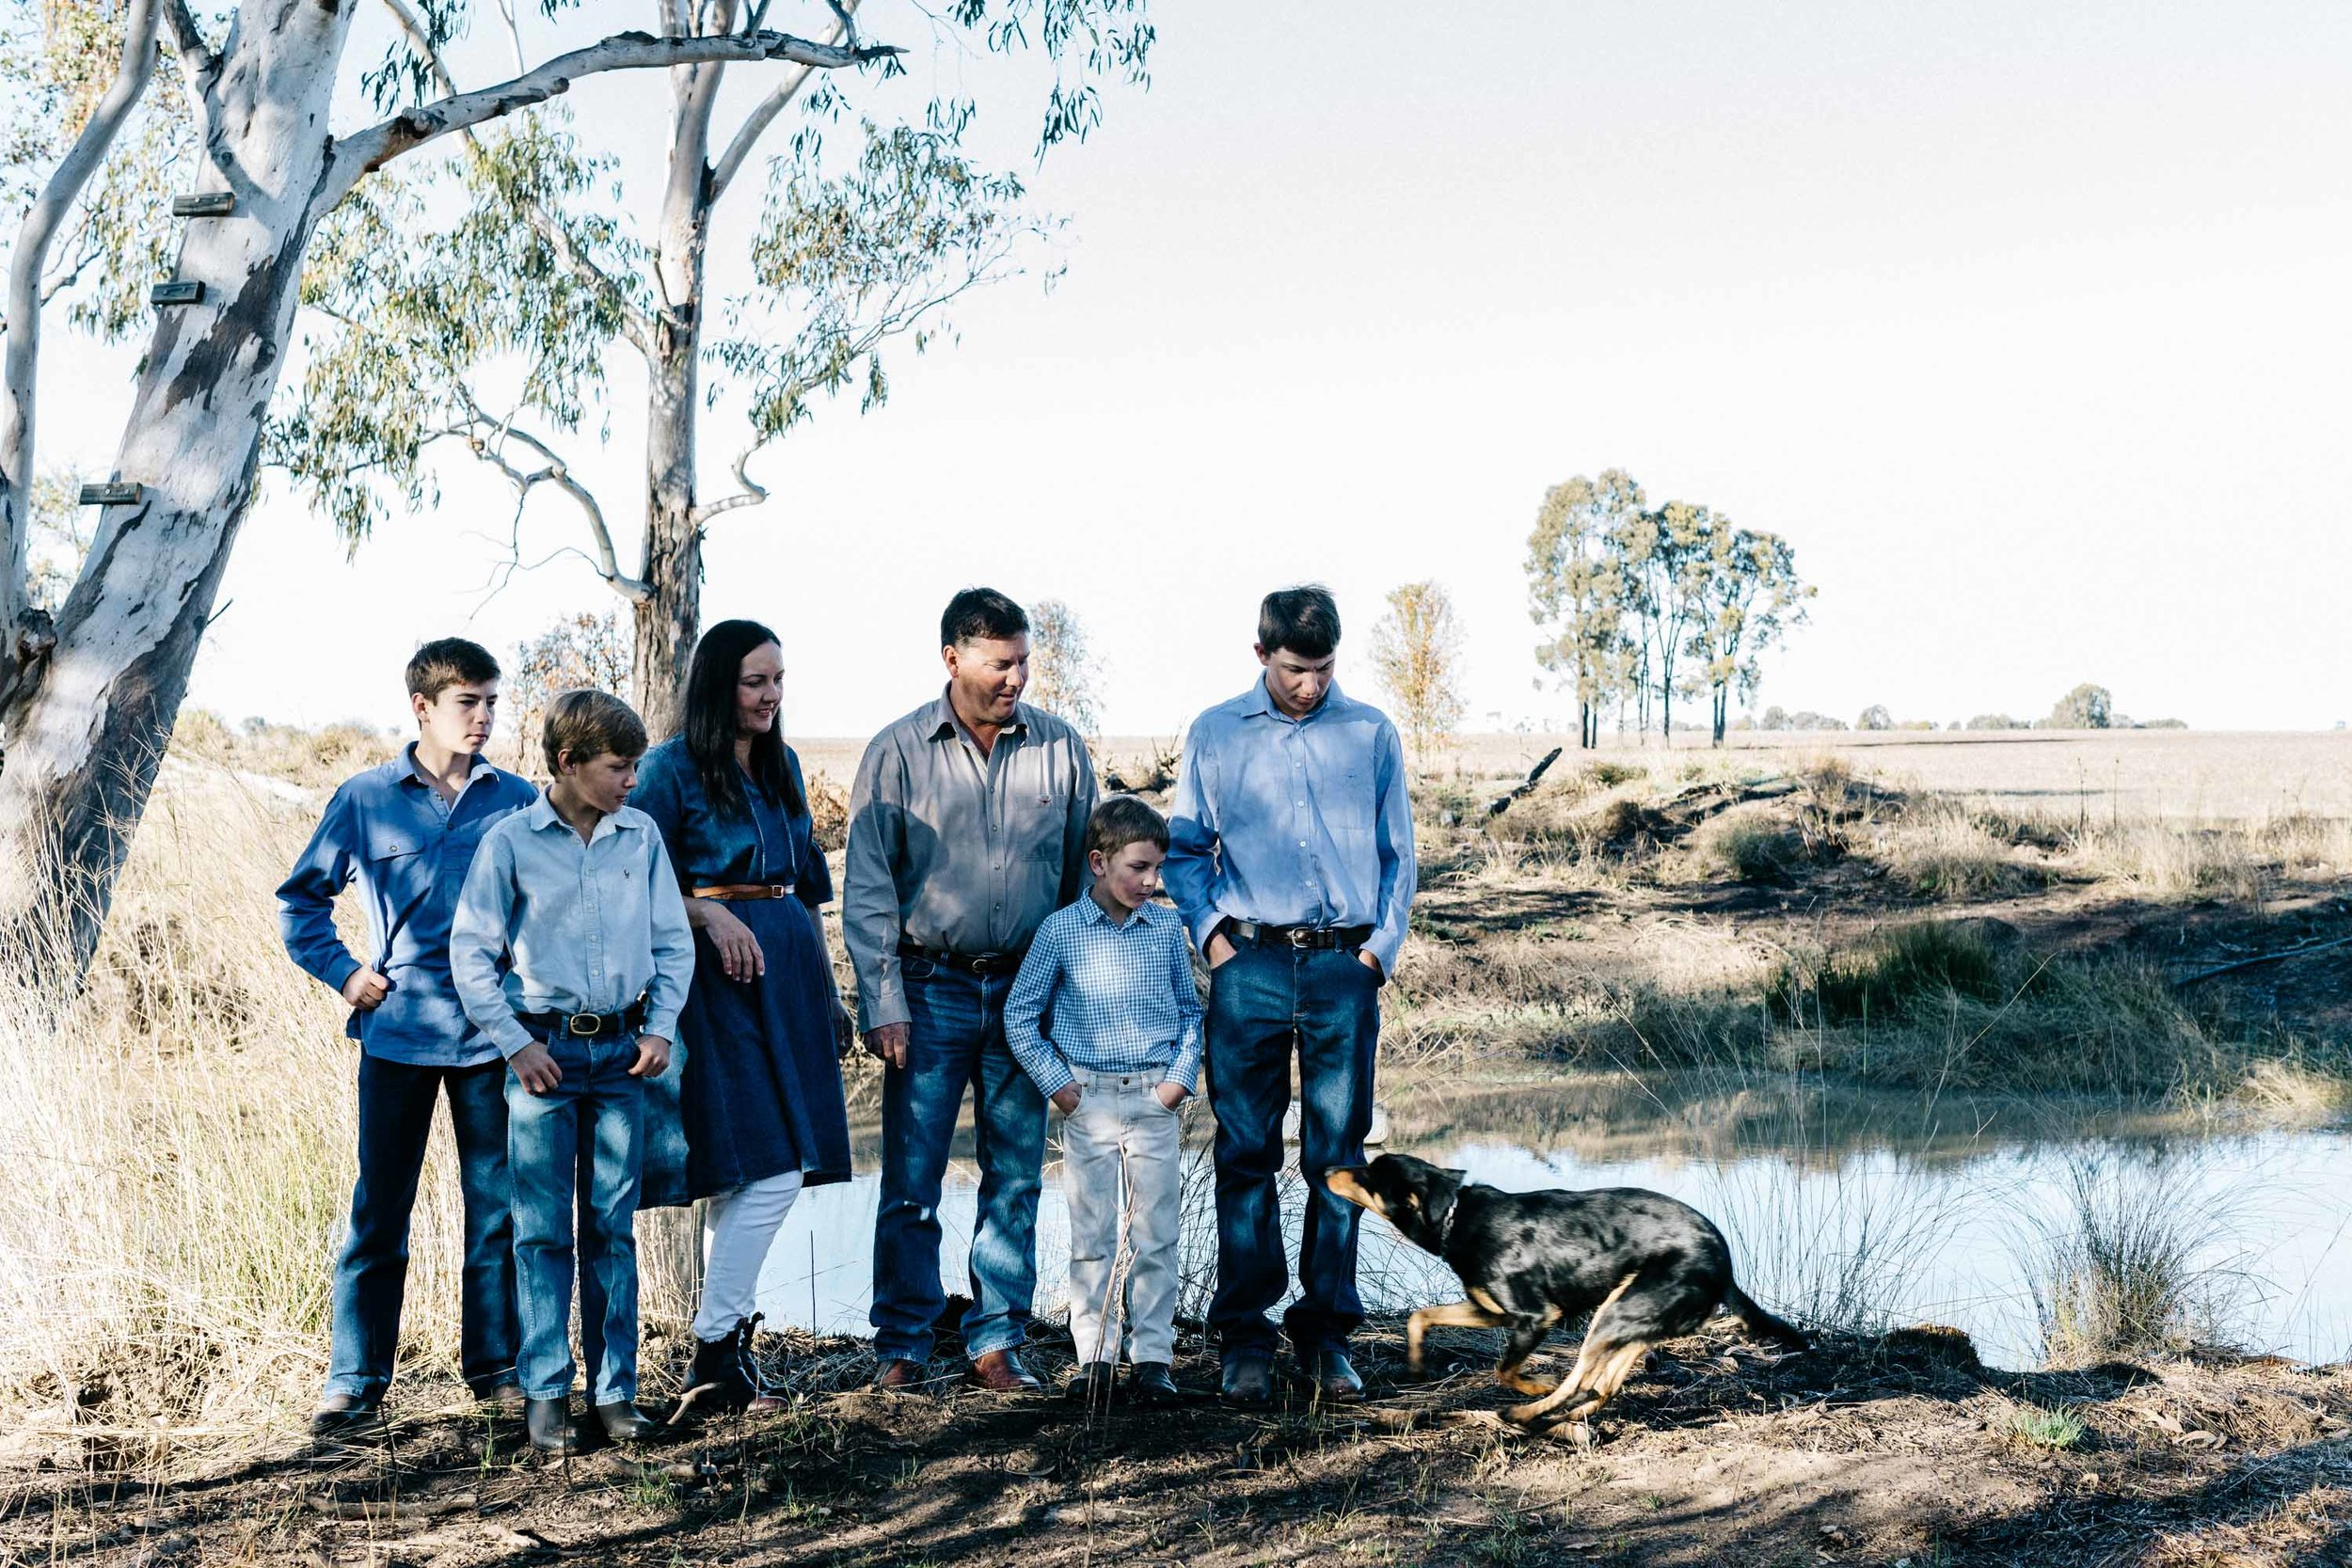 Marnie Hawson, Melbourne lifestyle photographer for Hopewood Home and Country Style magazine